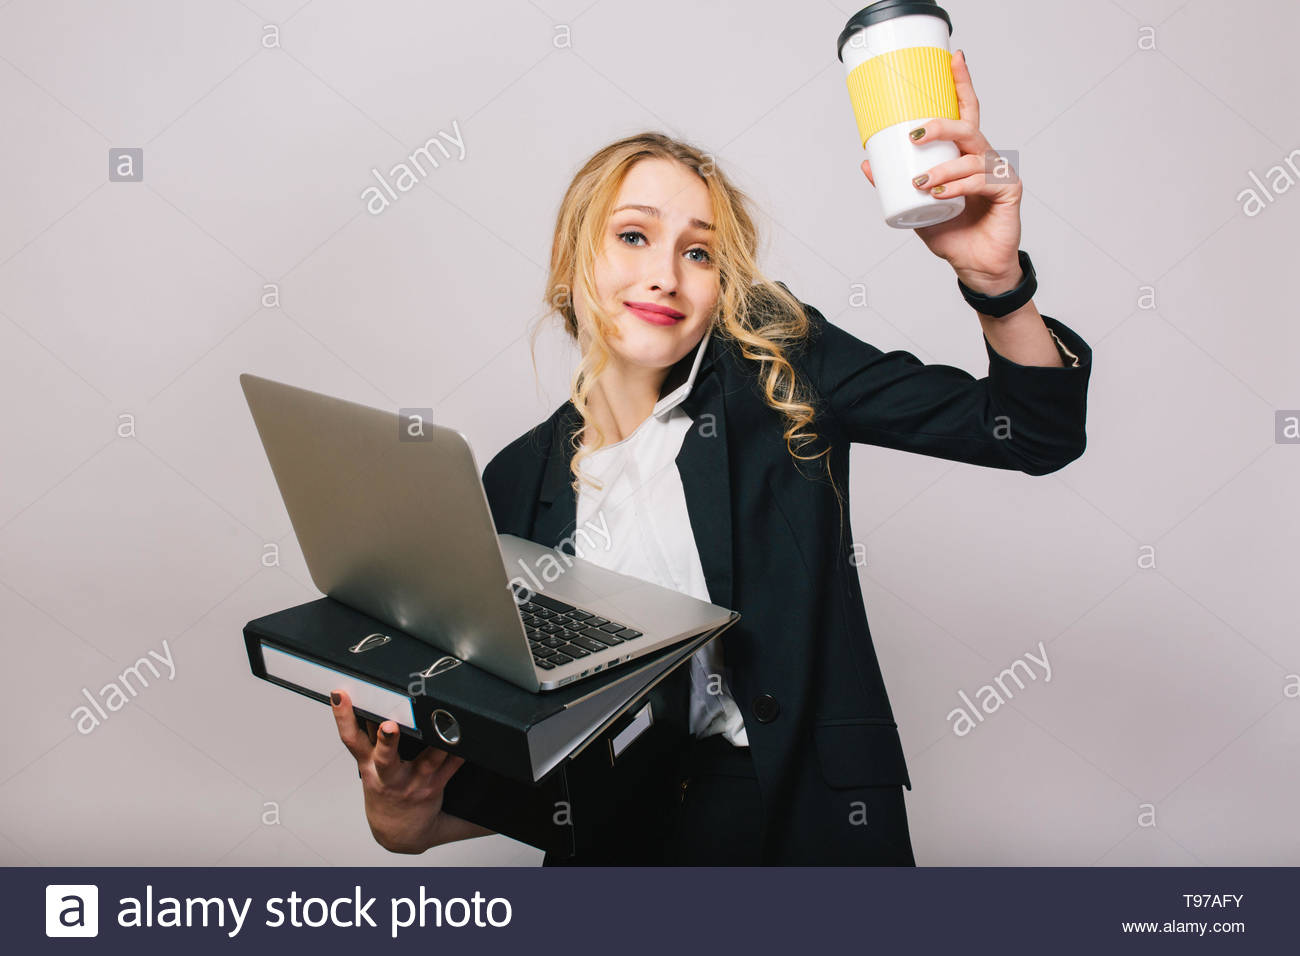 77392b682b18 Pretty blonde businesswoman with laptop, folder, box, caffee in hands  talking on phone